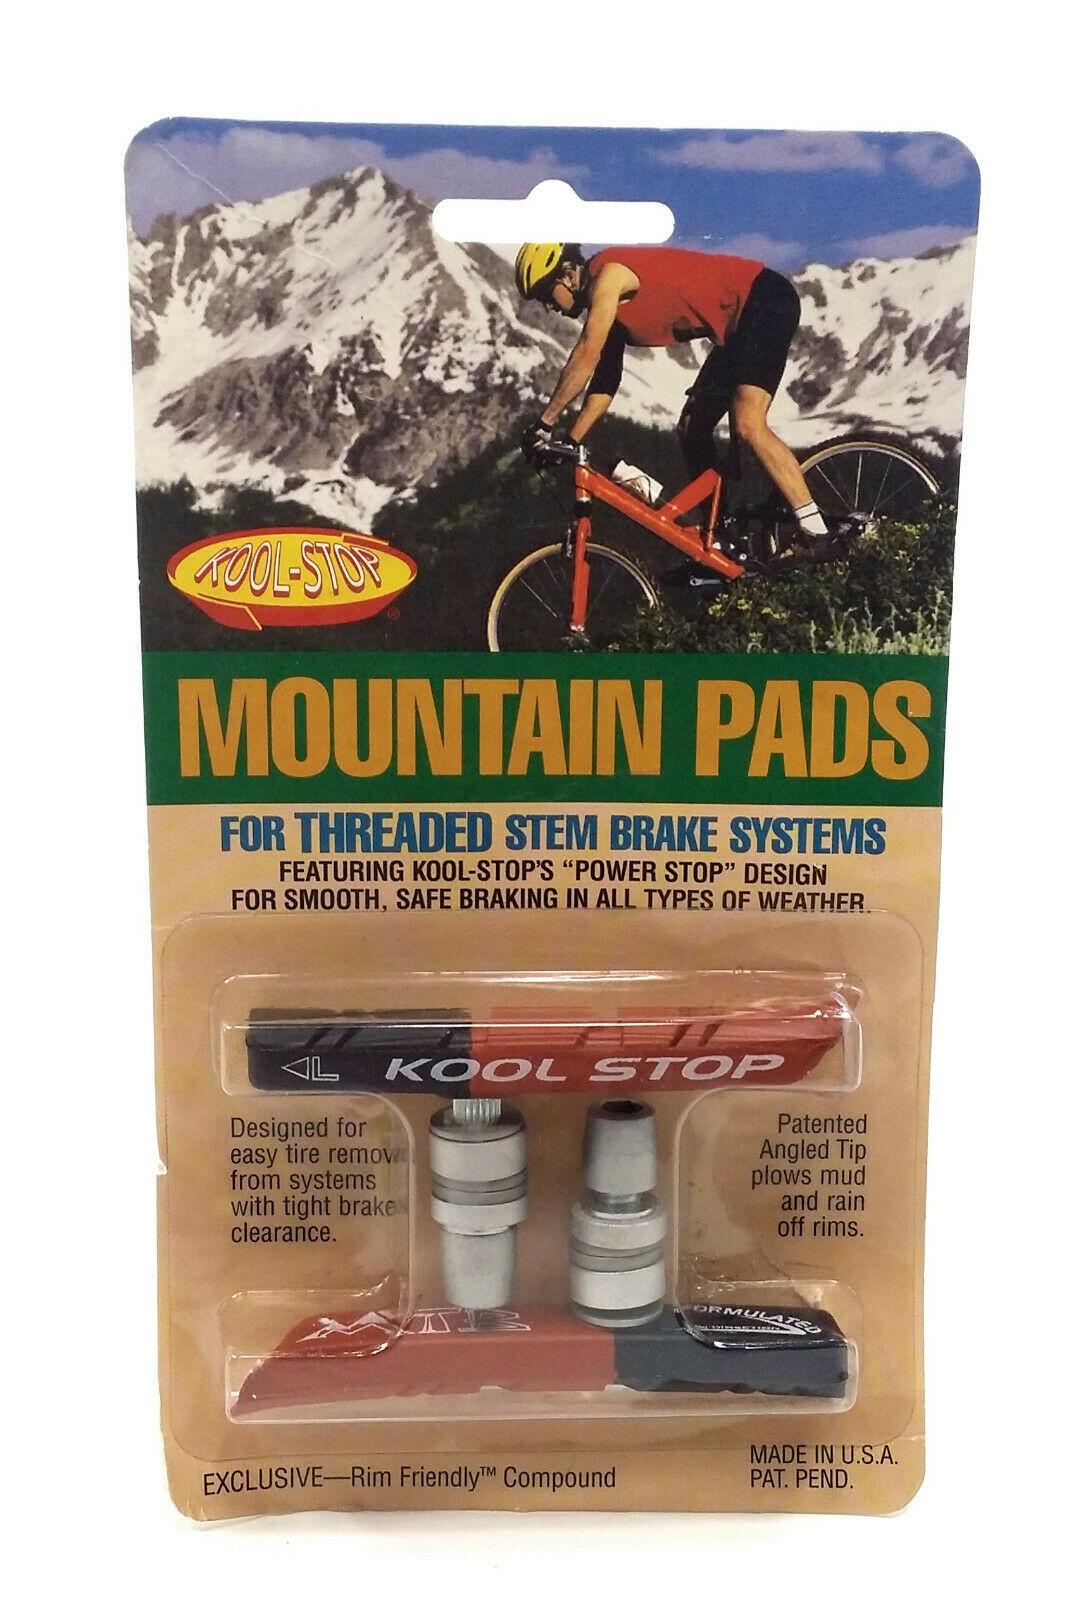 Kool-Stop Linear Pull Replacement Brake Pads Salmon Compound for sale online